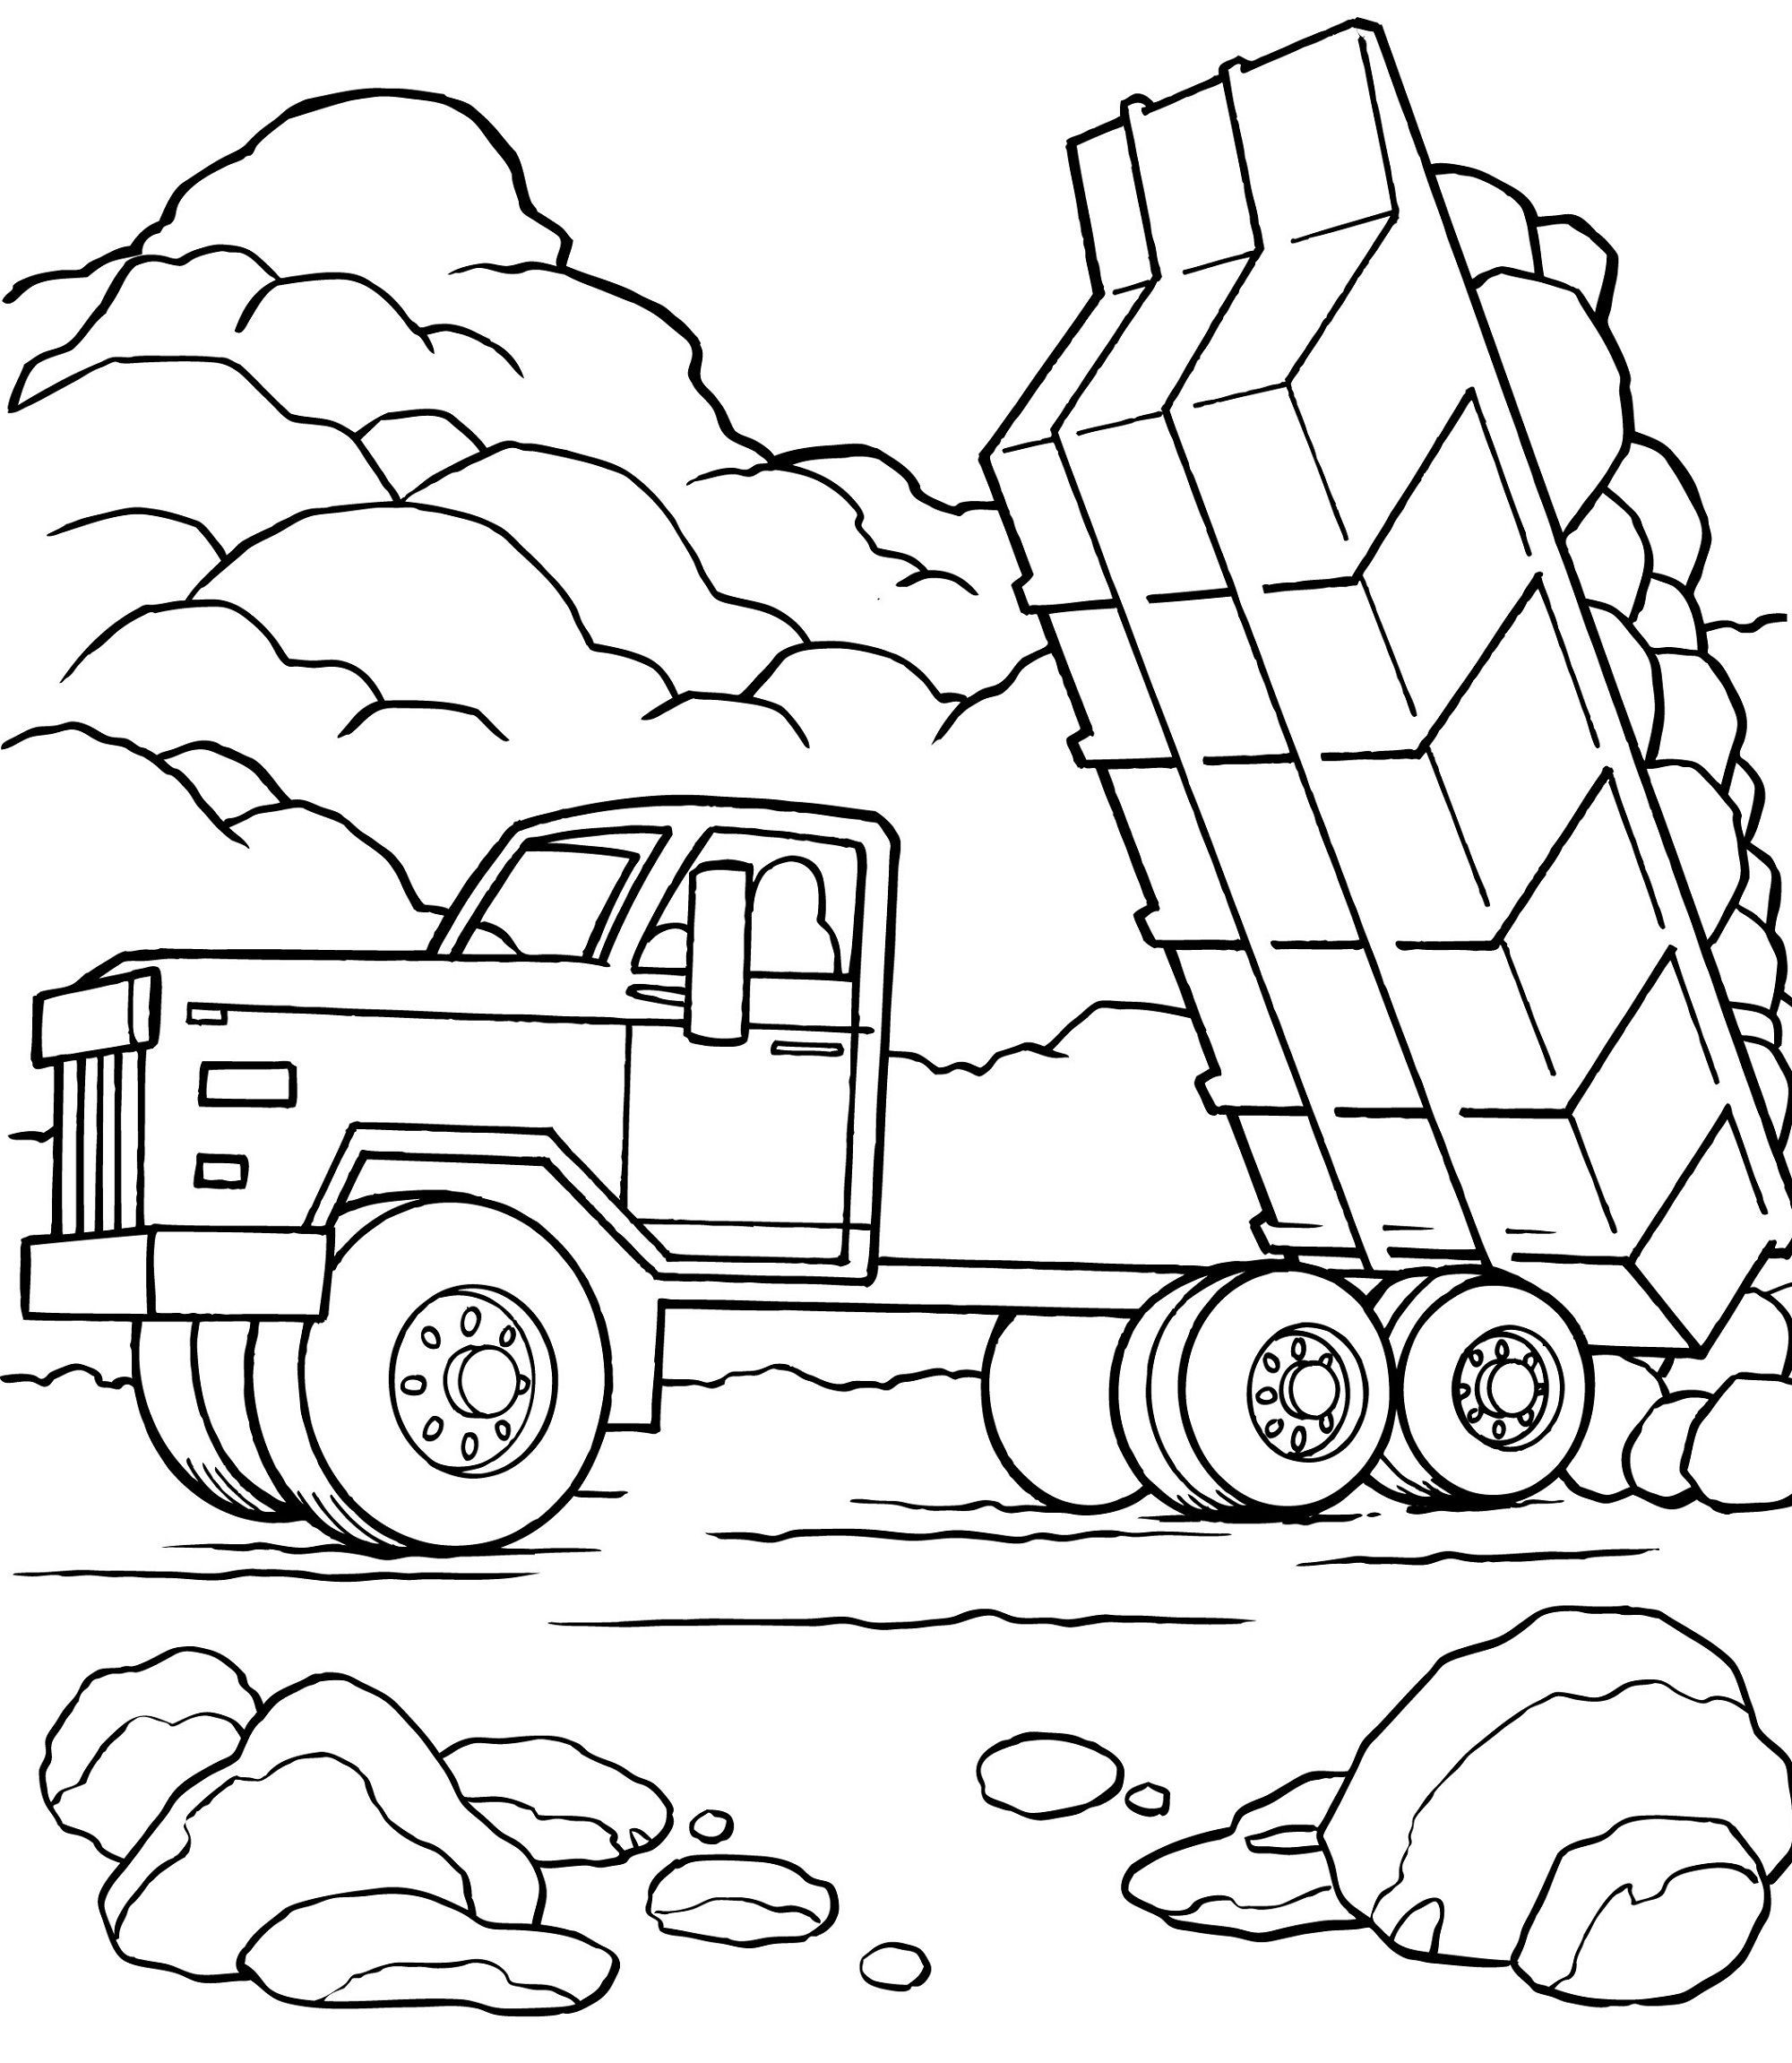 Truck Color Pages Printable Truck Coloring Pages Train Coloring Pages Monster Truck Coloring Pages